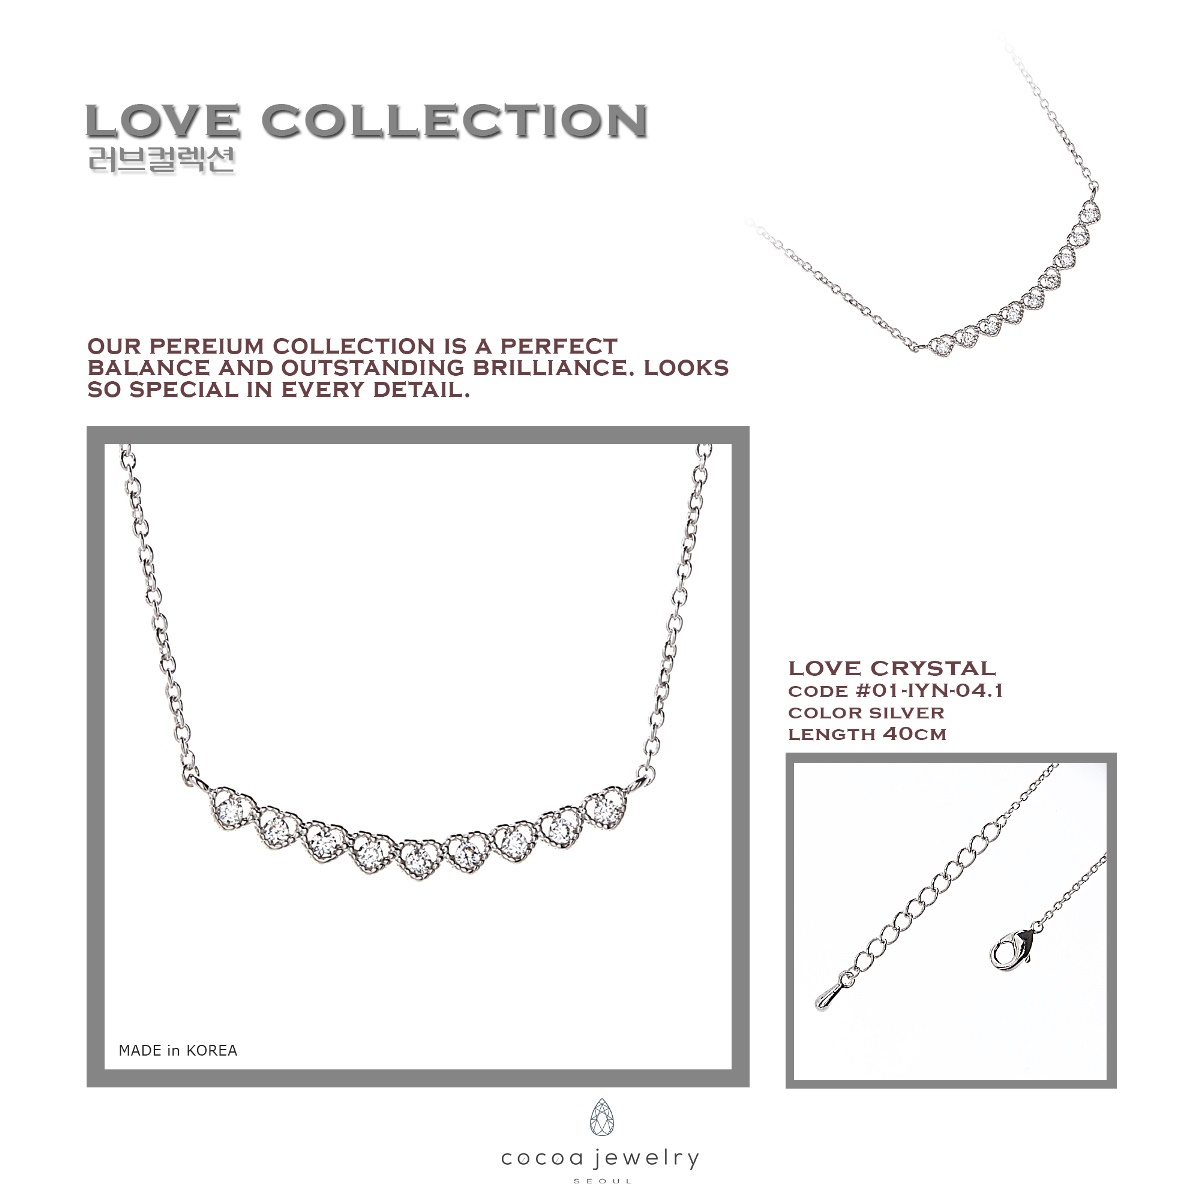 Buy Clearance Sale Cocoa Jewelry Necklace And Earrings Collection New Arrival Gelang Golden Time Silver Color Love Crystal Detail Produk Material Brass Size One Model 01 Iyn 041 Dimensi 3 X 03 02 Cm